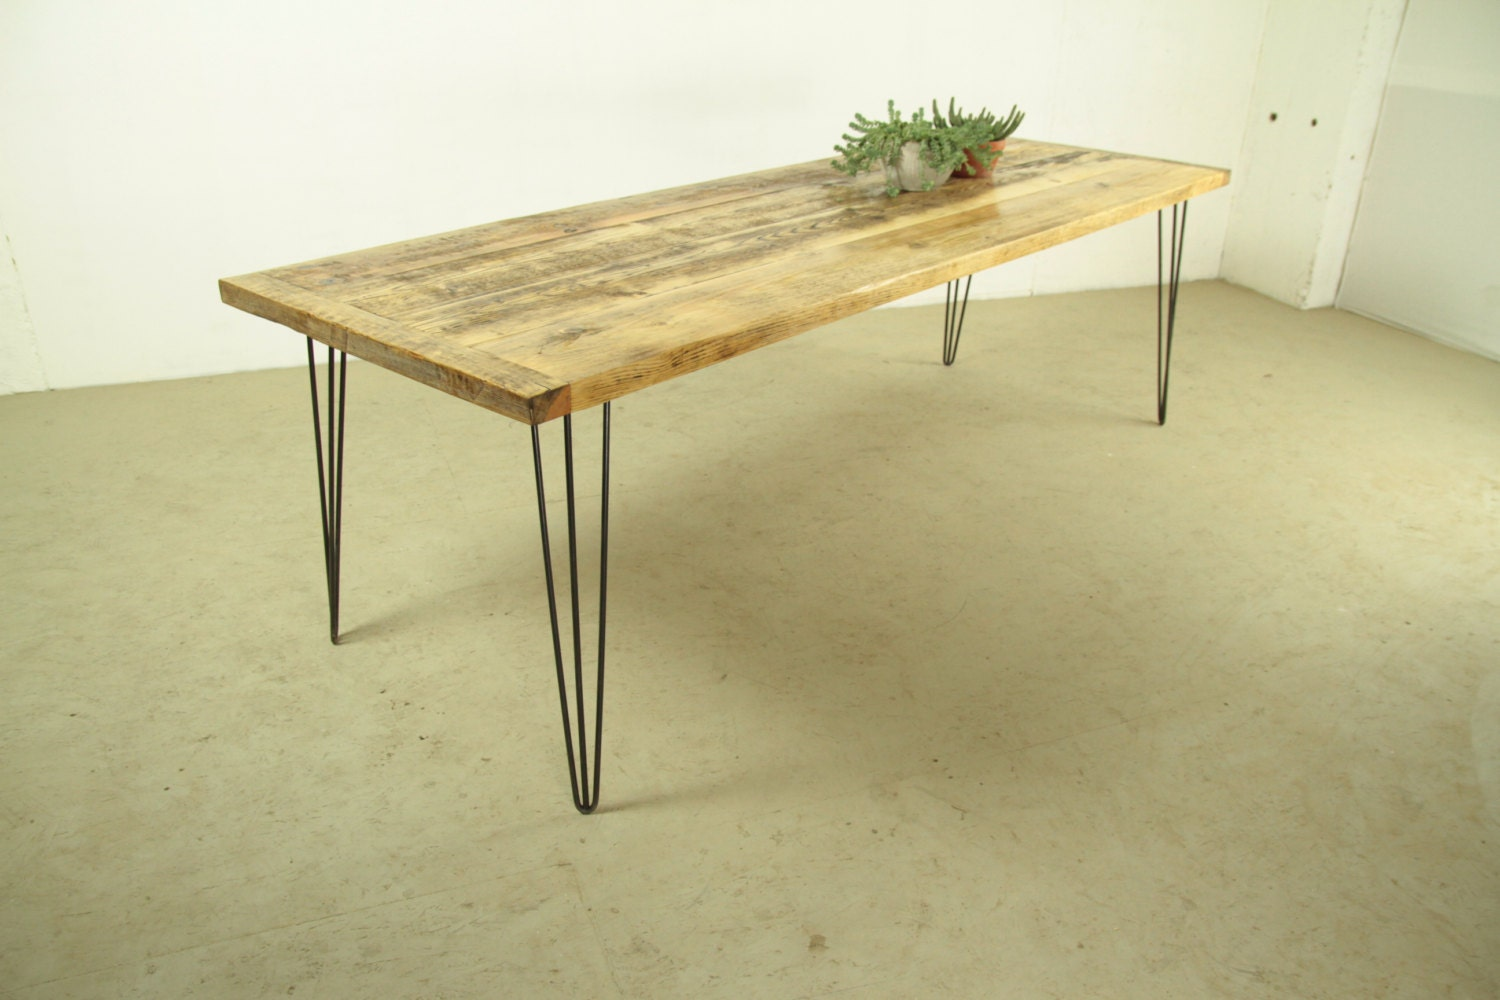 Reclaimed Wood Dining Table Modern And Industrial Home By Kentholz